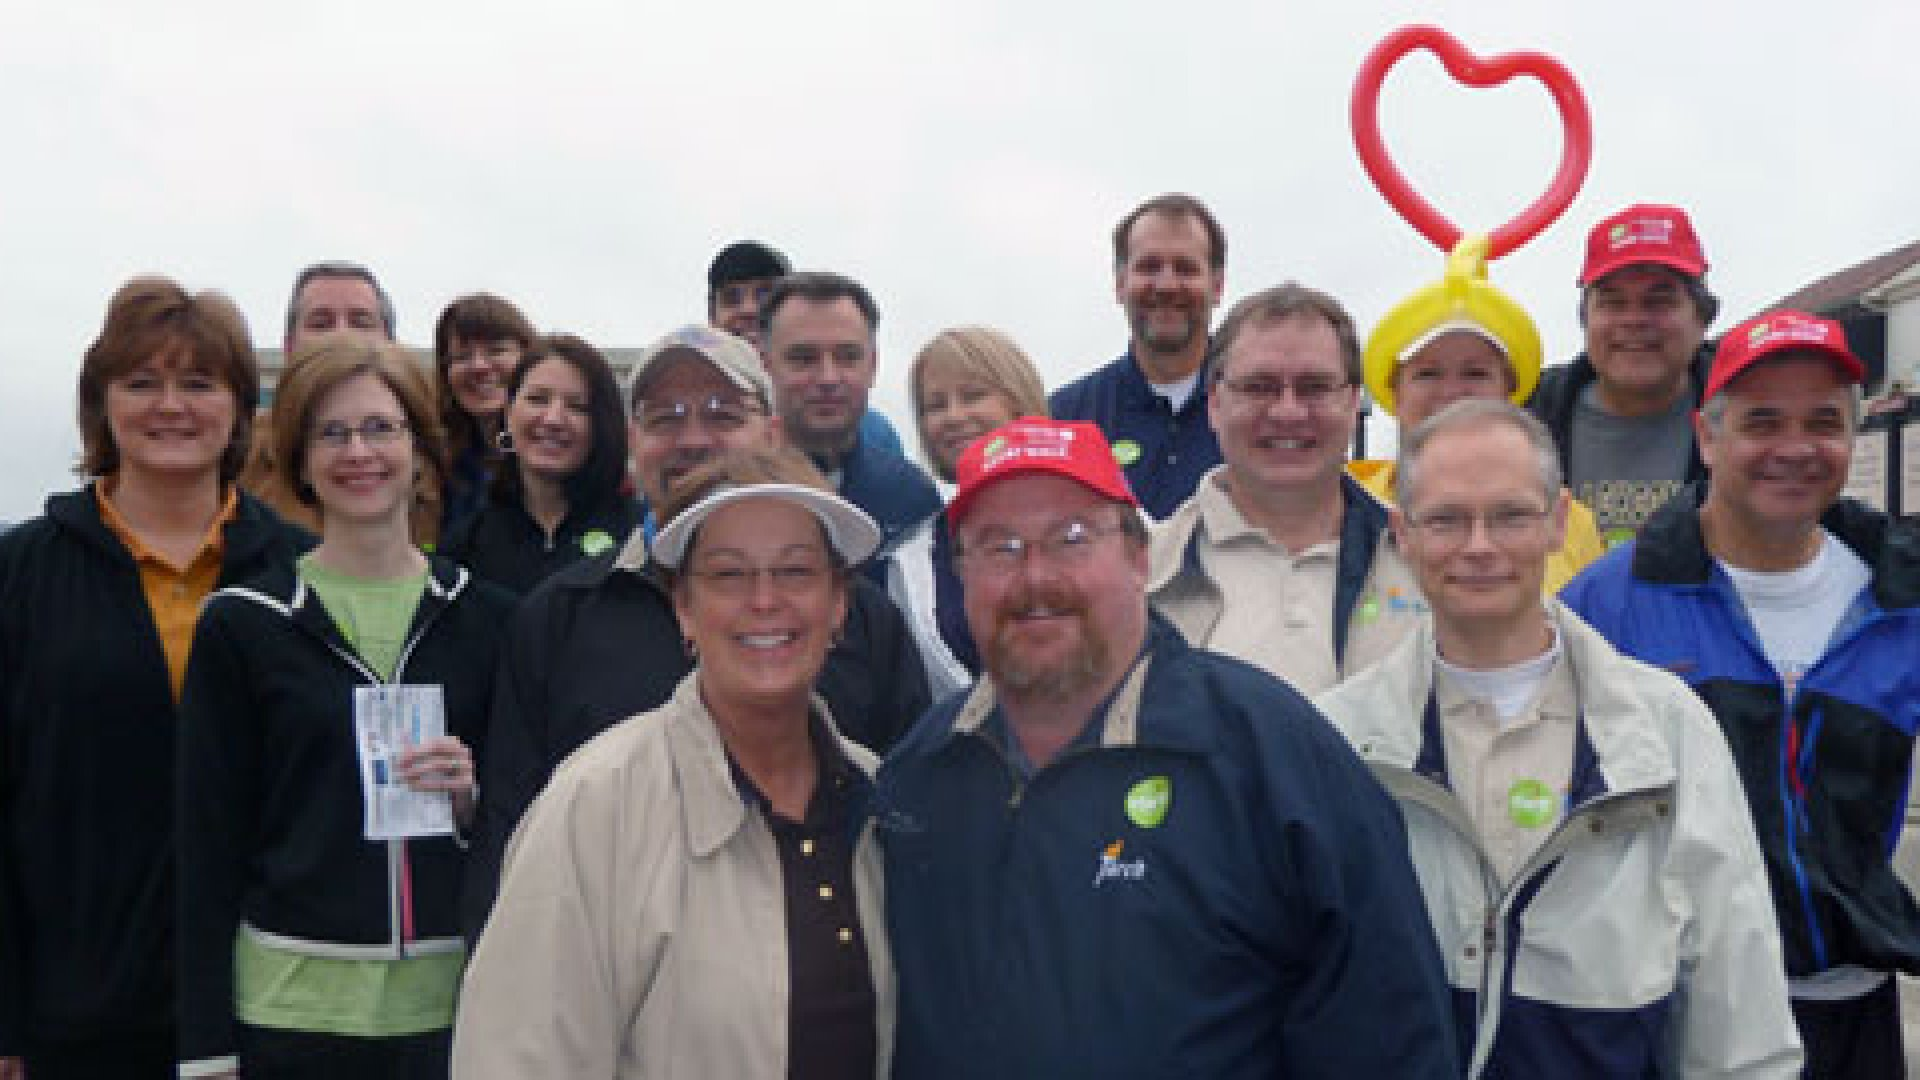 Employees join CEO Bill Roark and his wife Brenda (front) for the Torch Technologies team at the 2011 American Heart Association walk.